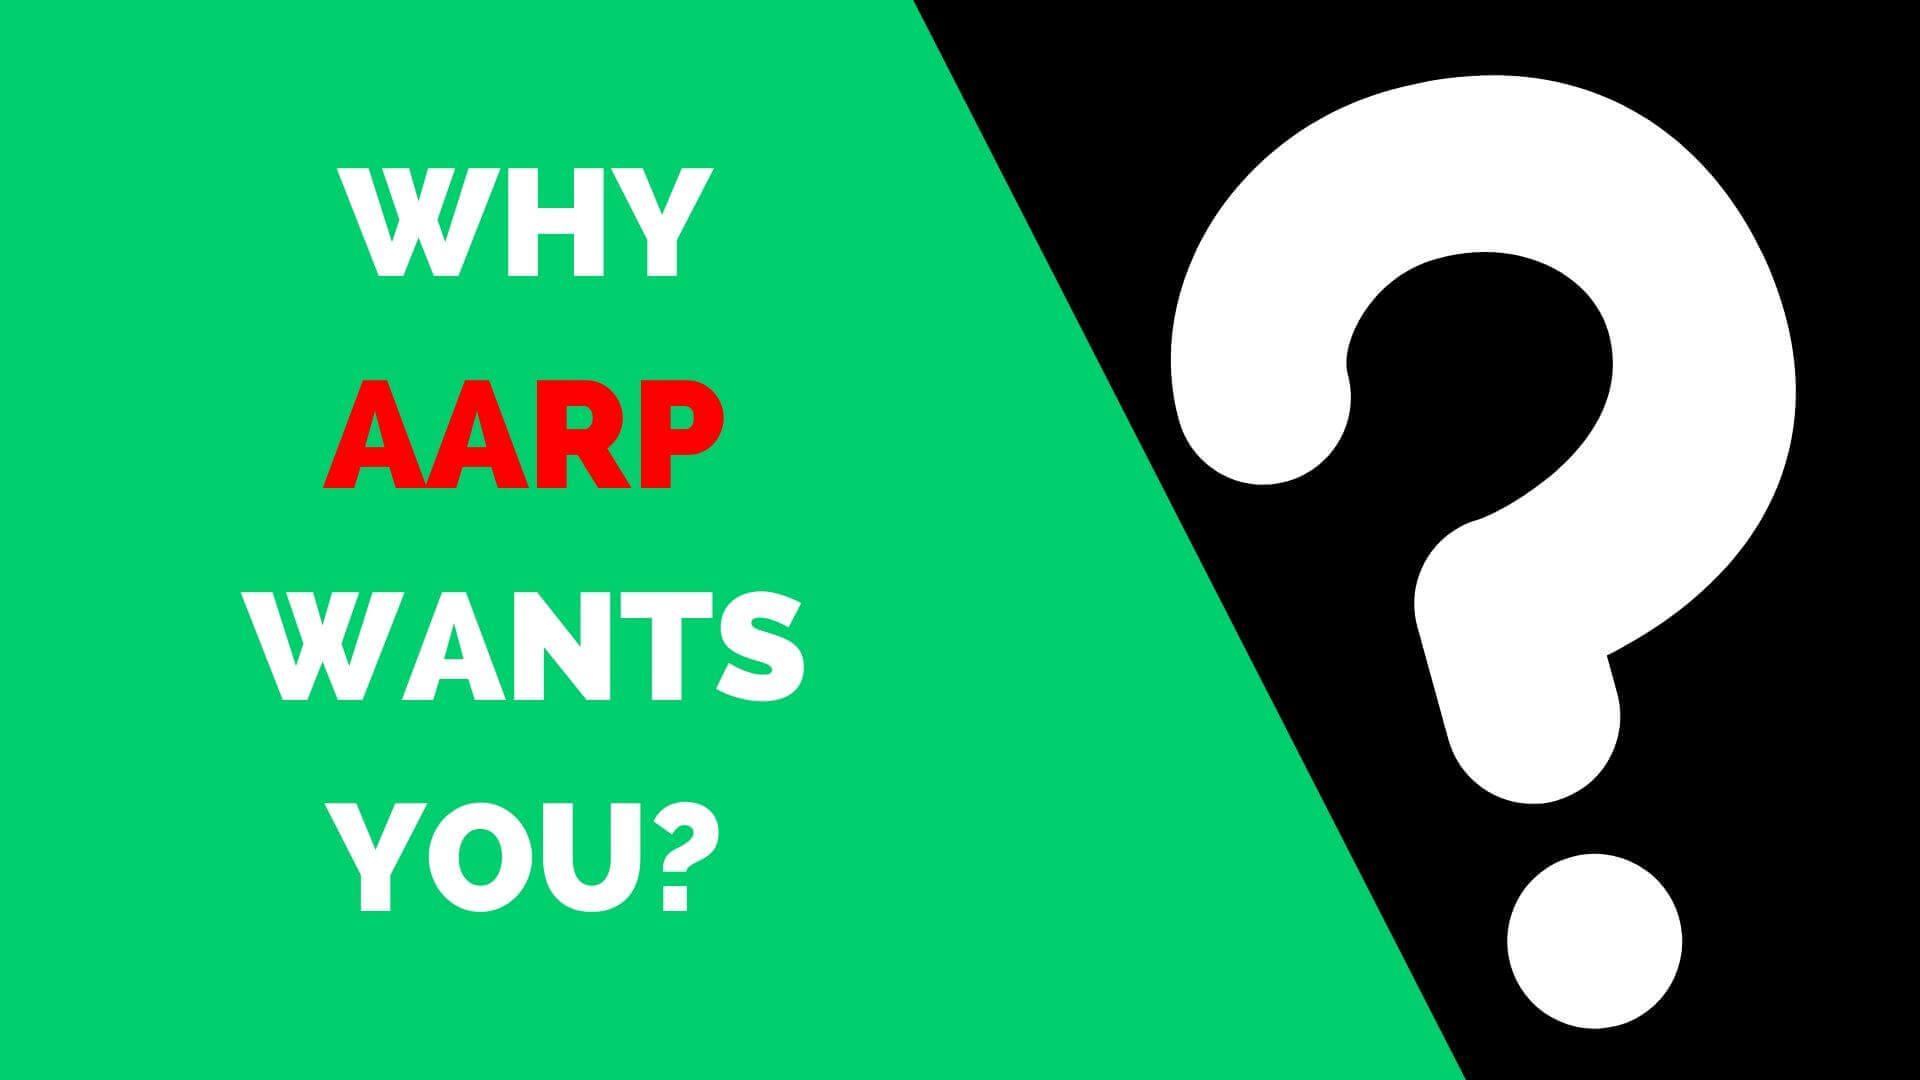 Why AARP Wants you to choose AARP Health Insurance?